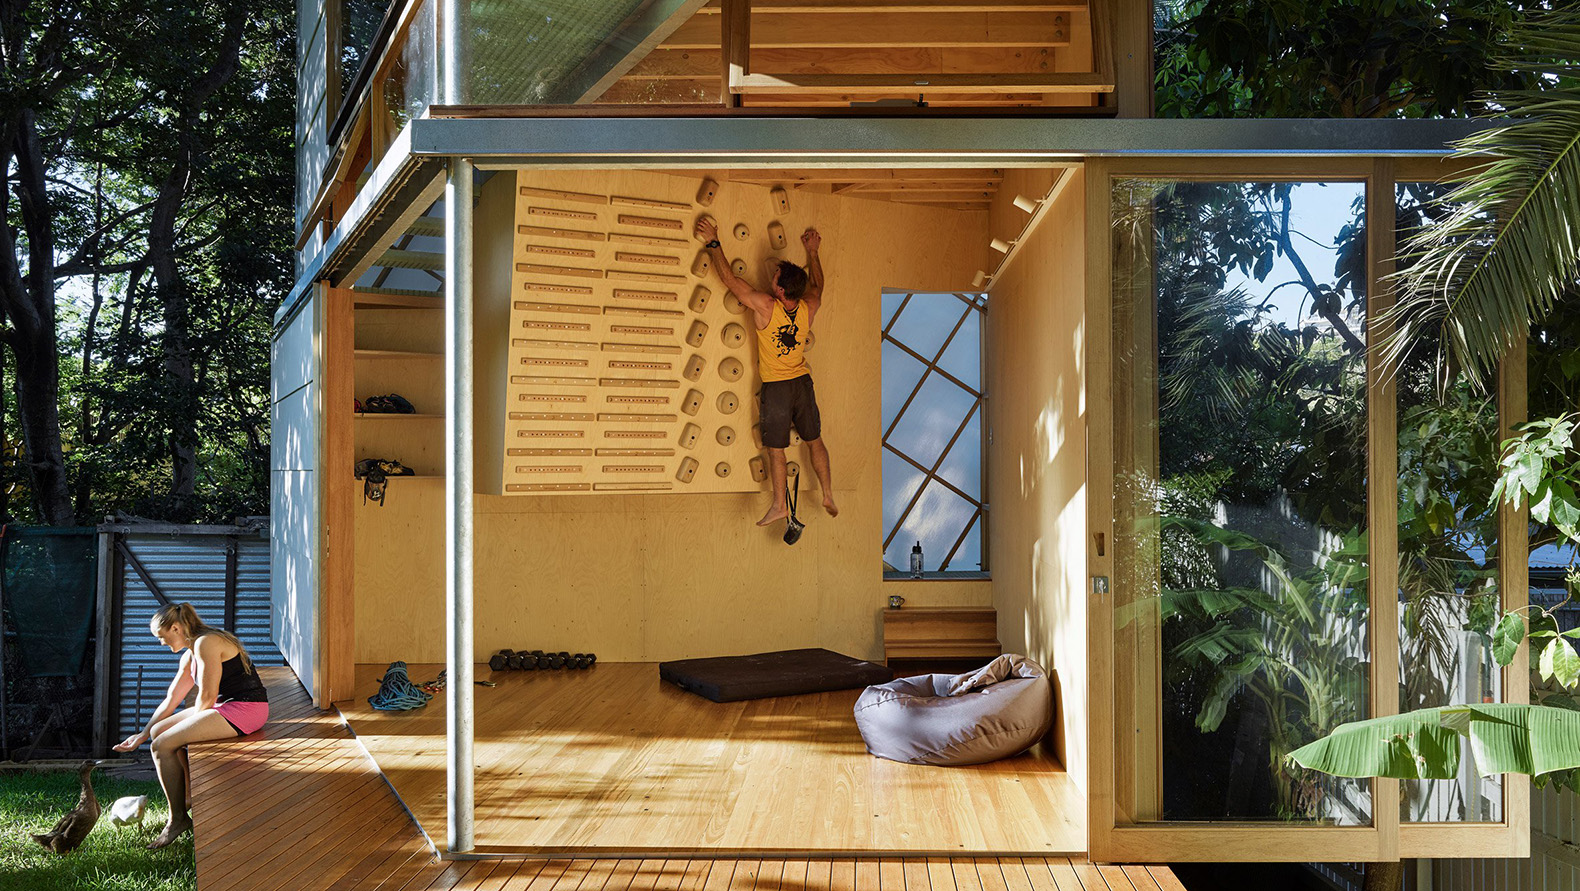 Extraordinary Treehouse Is A Climberu0027s Dream With Its Own Indoor Climbing  Wall